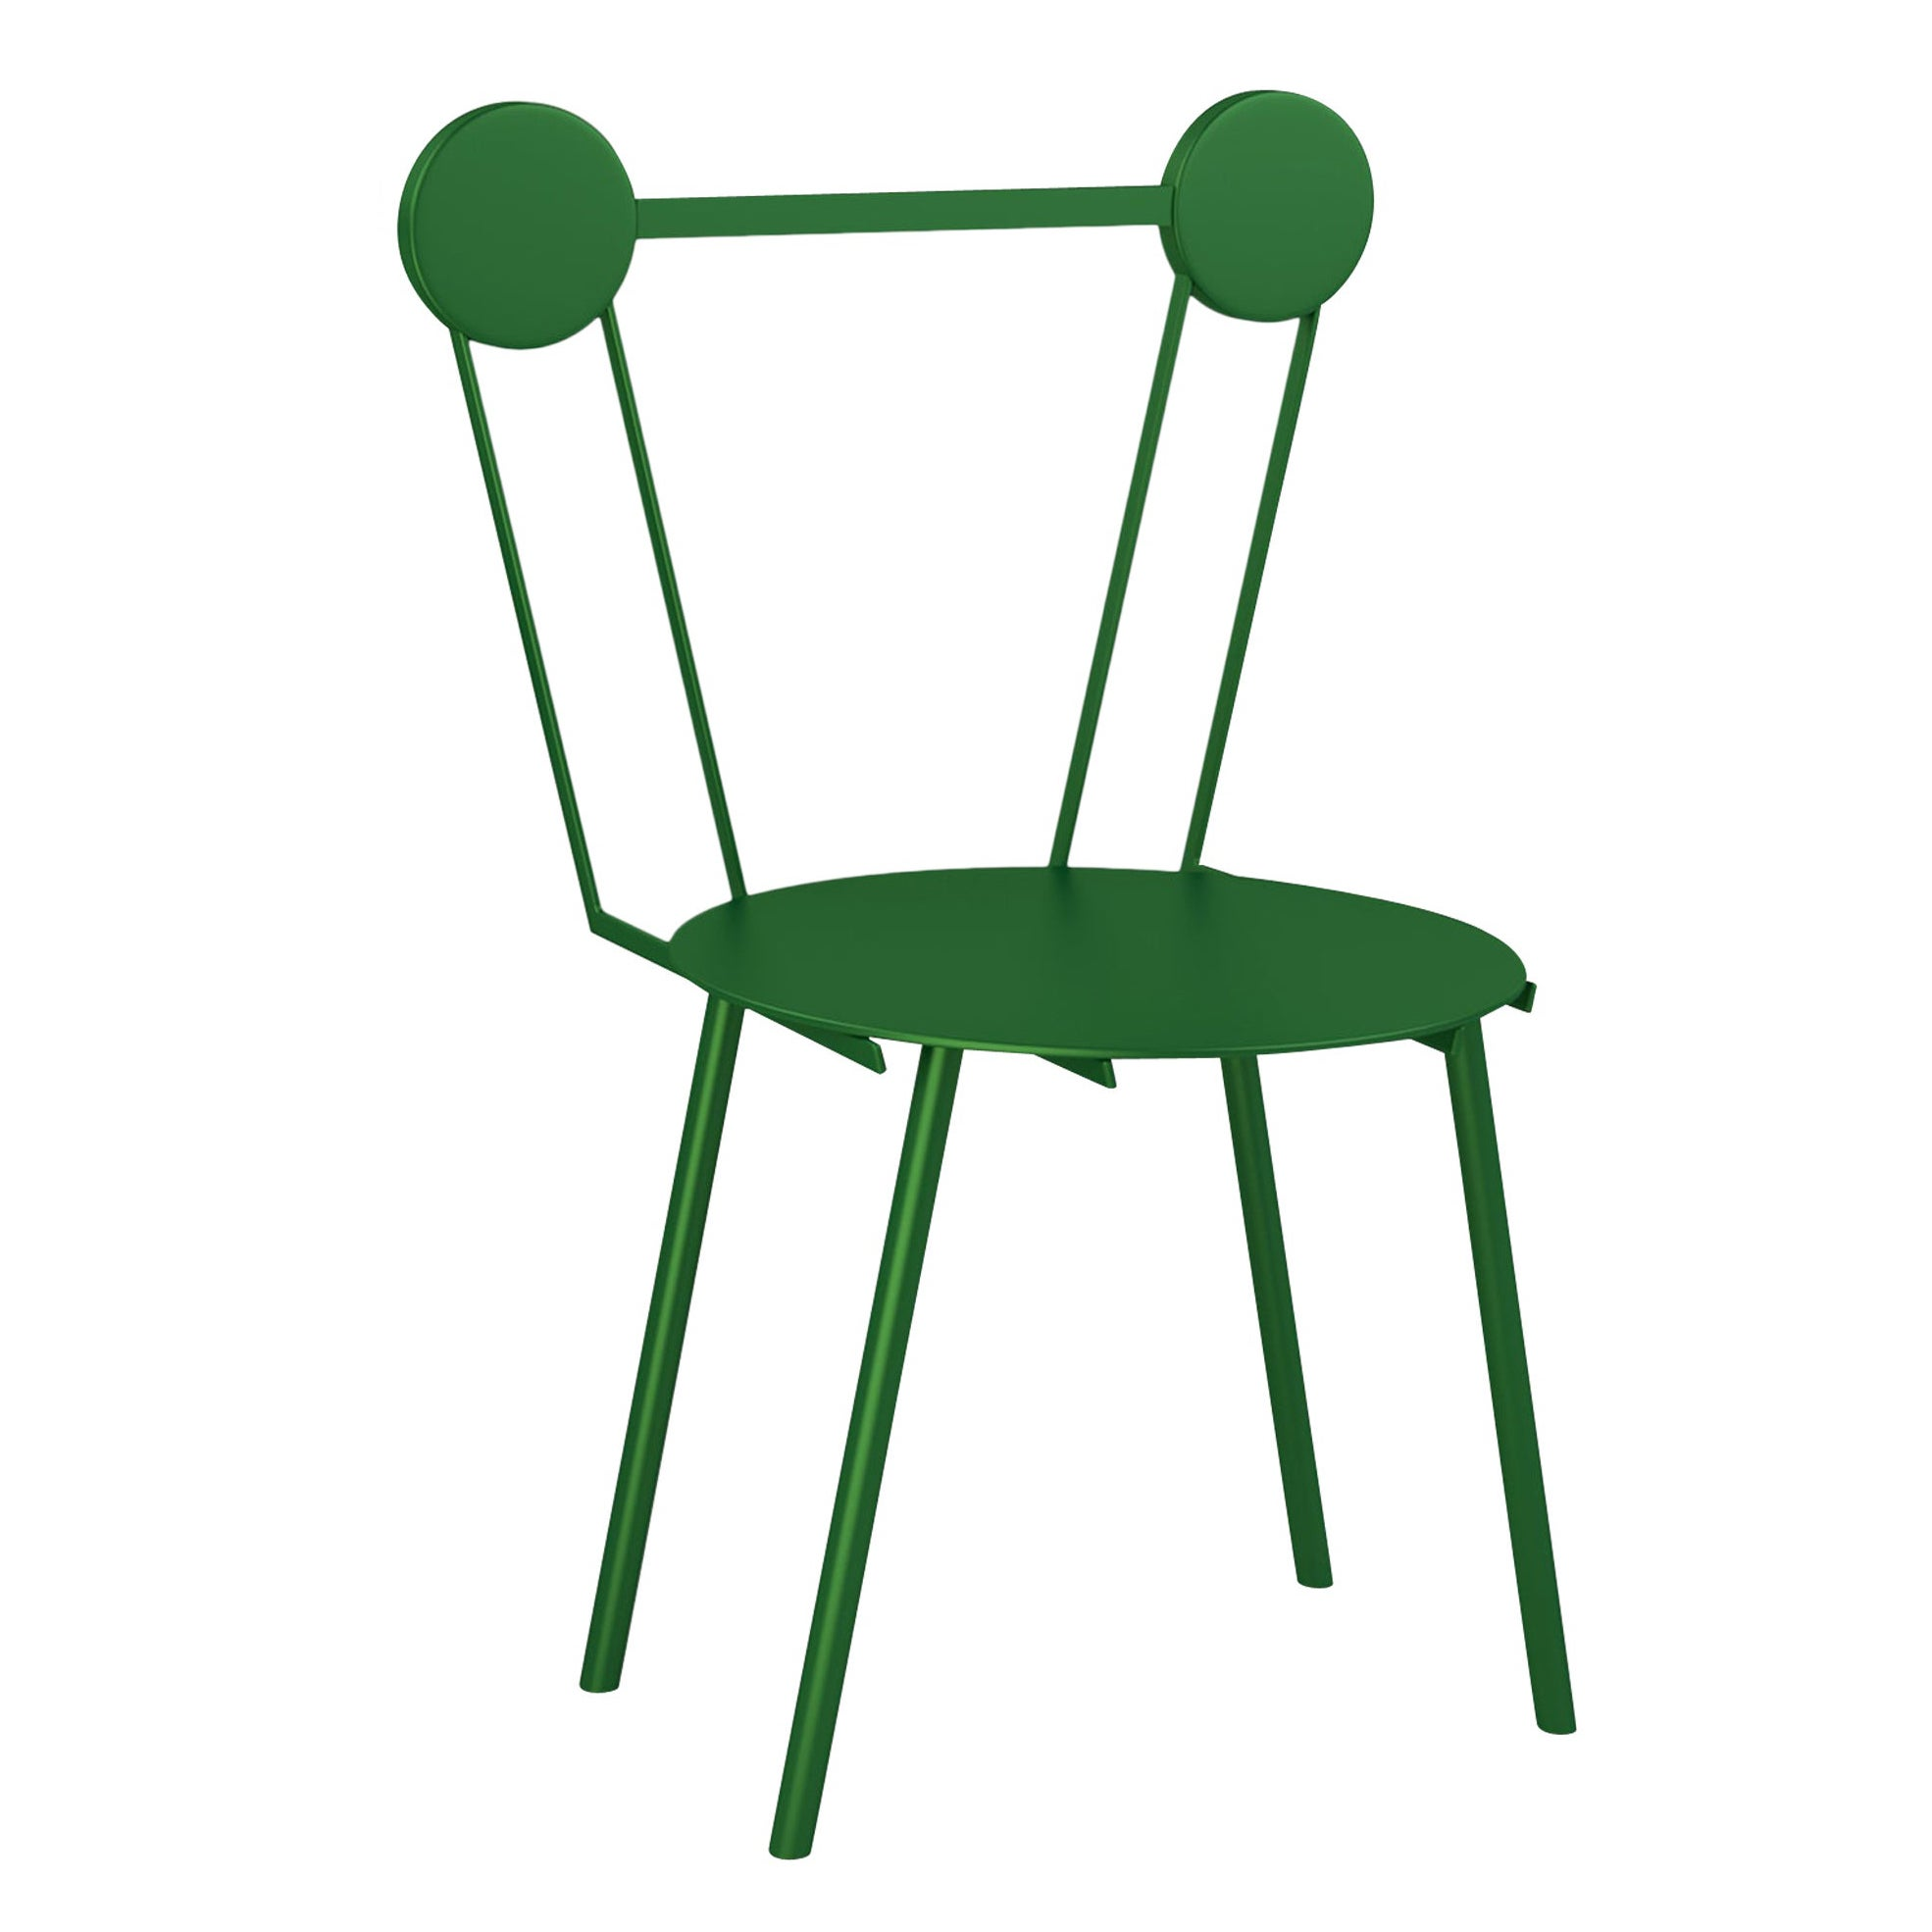 Contemporary Chair Green Haly Aluminium by Chapel Petrassi